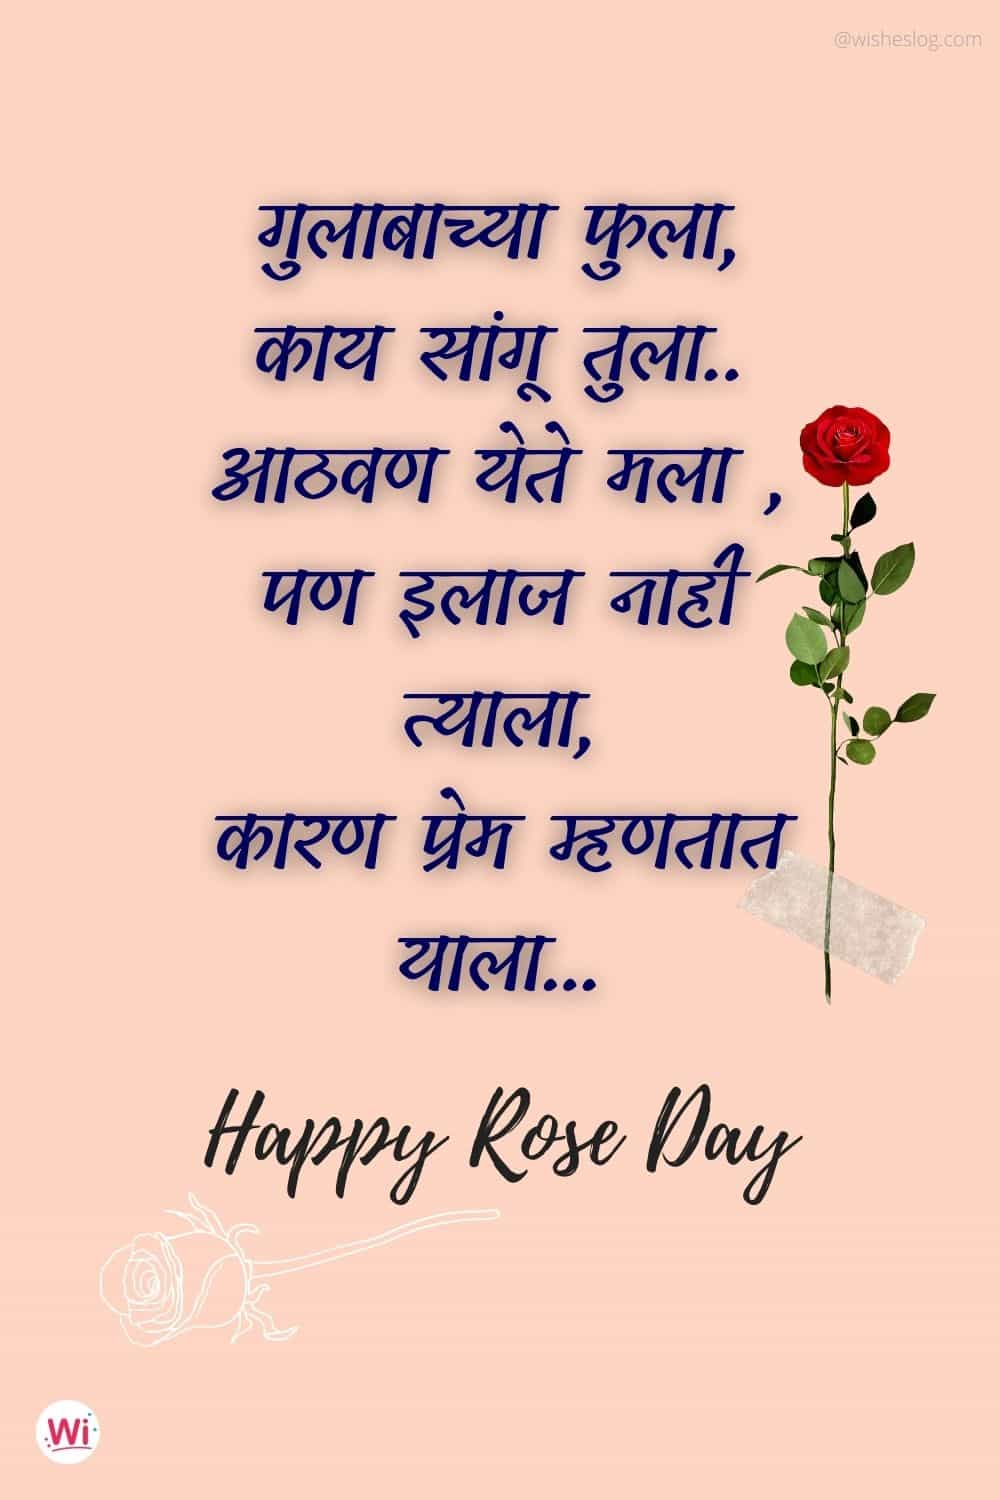 rose day messages for gf in marathi